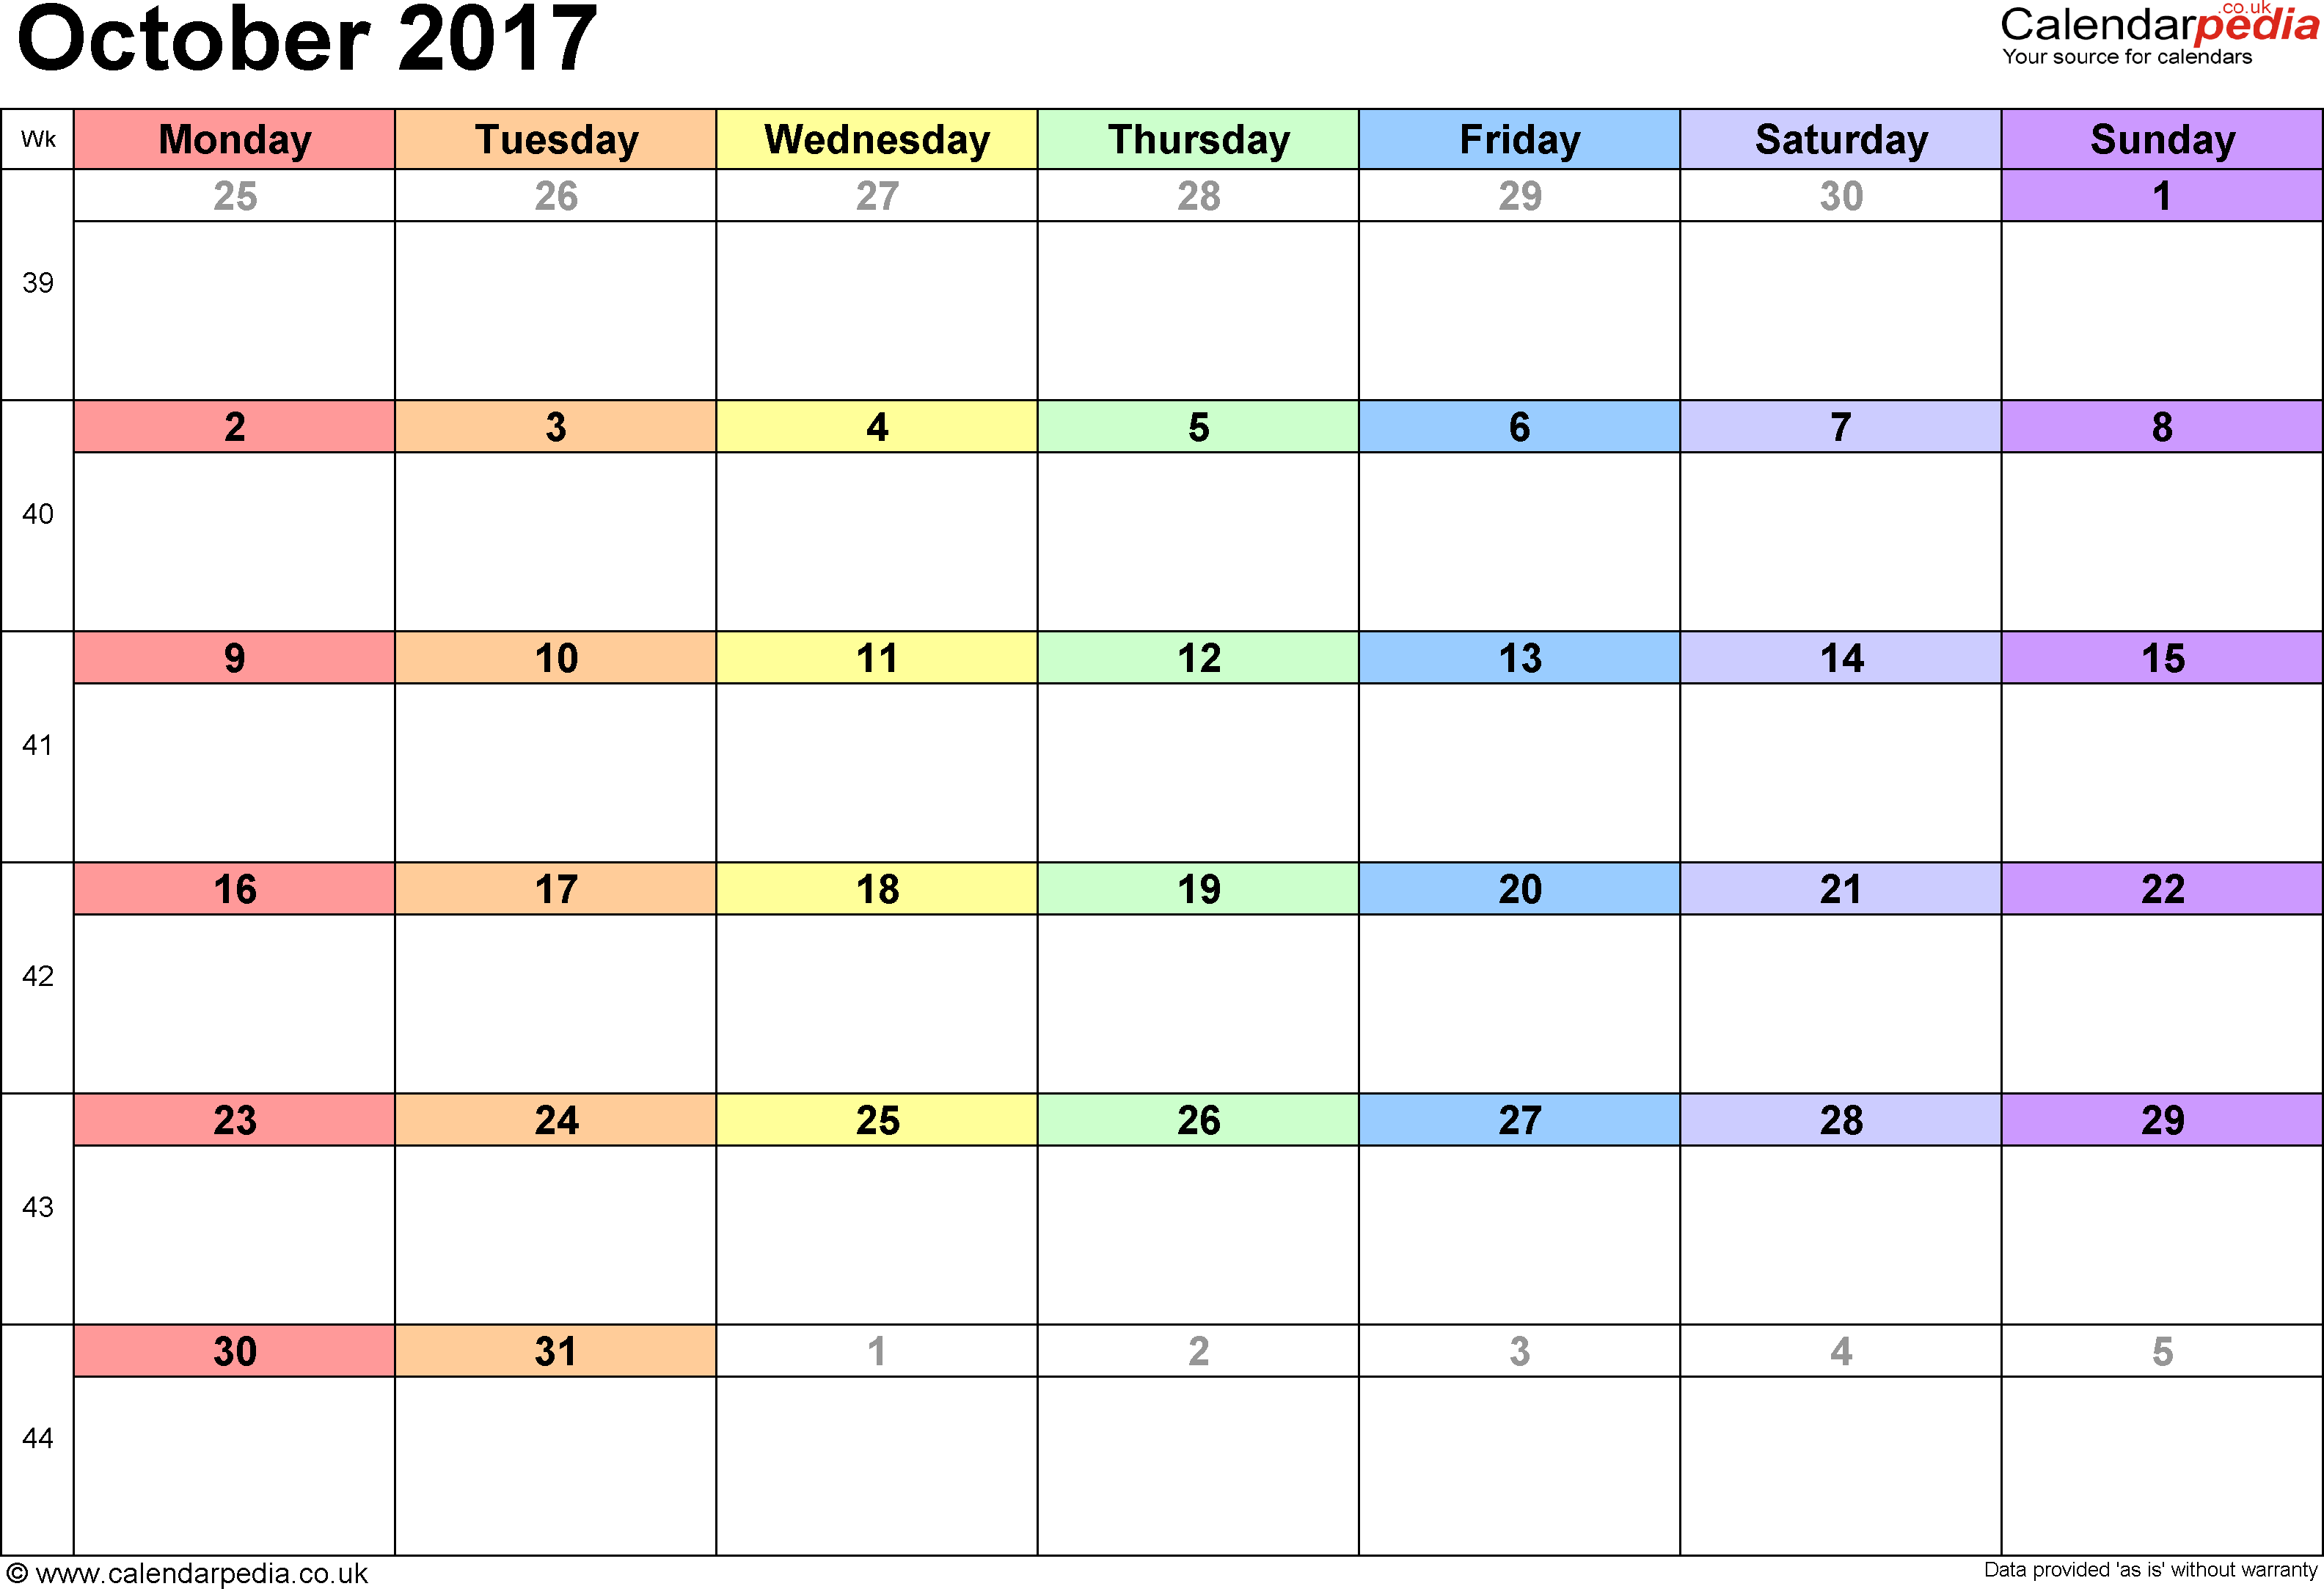 Calendar October 2017, landscape orientation, 1 page, with UK bank holidays and week numbers